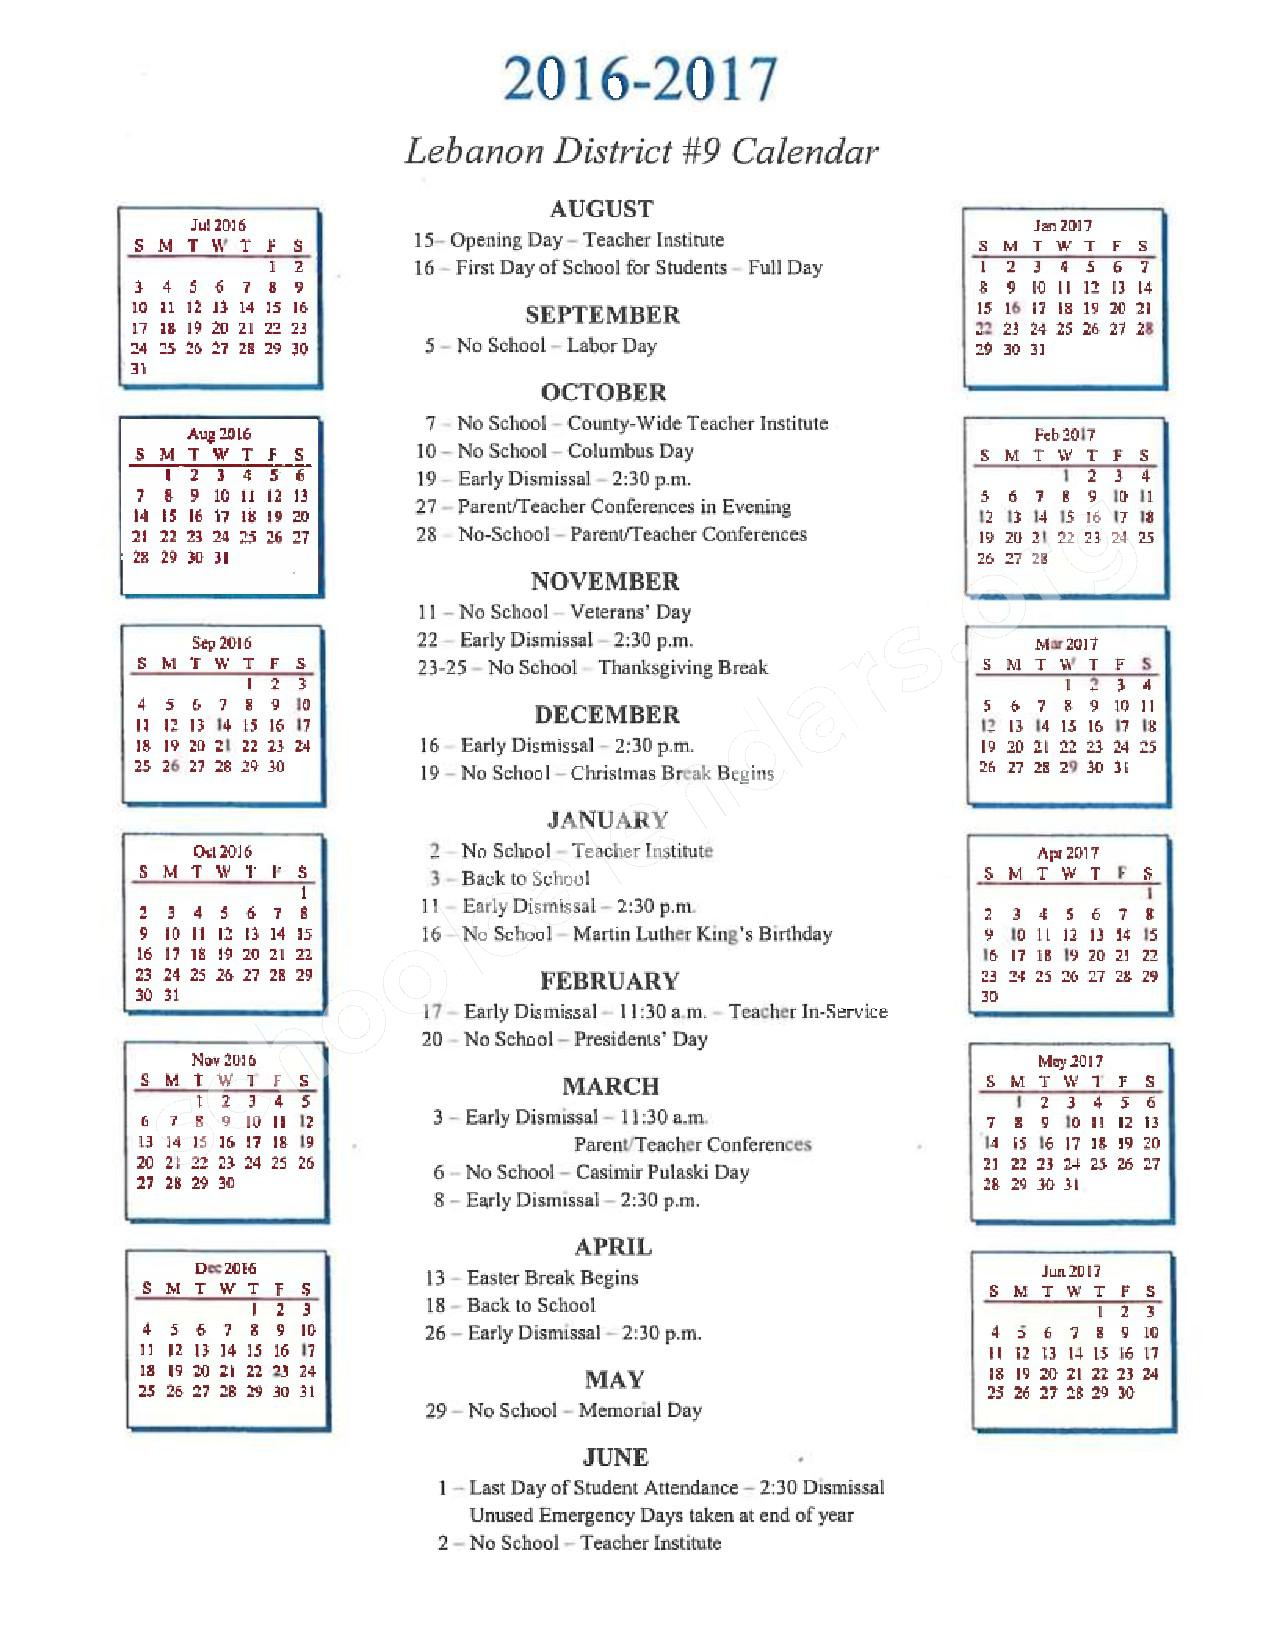 2016 - 2017 District Calendar page 1